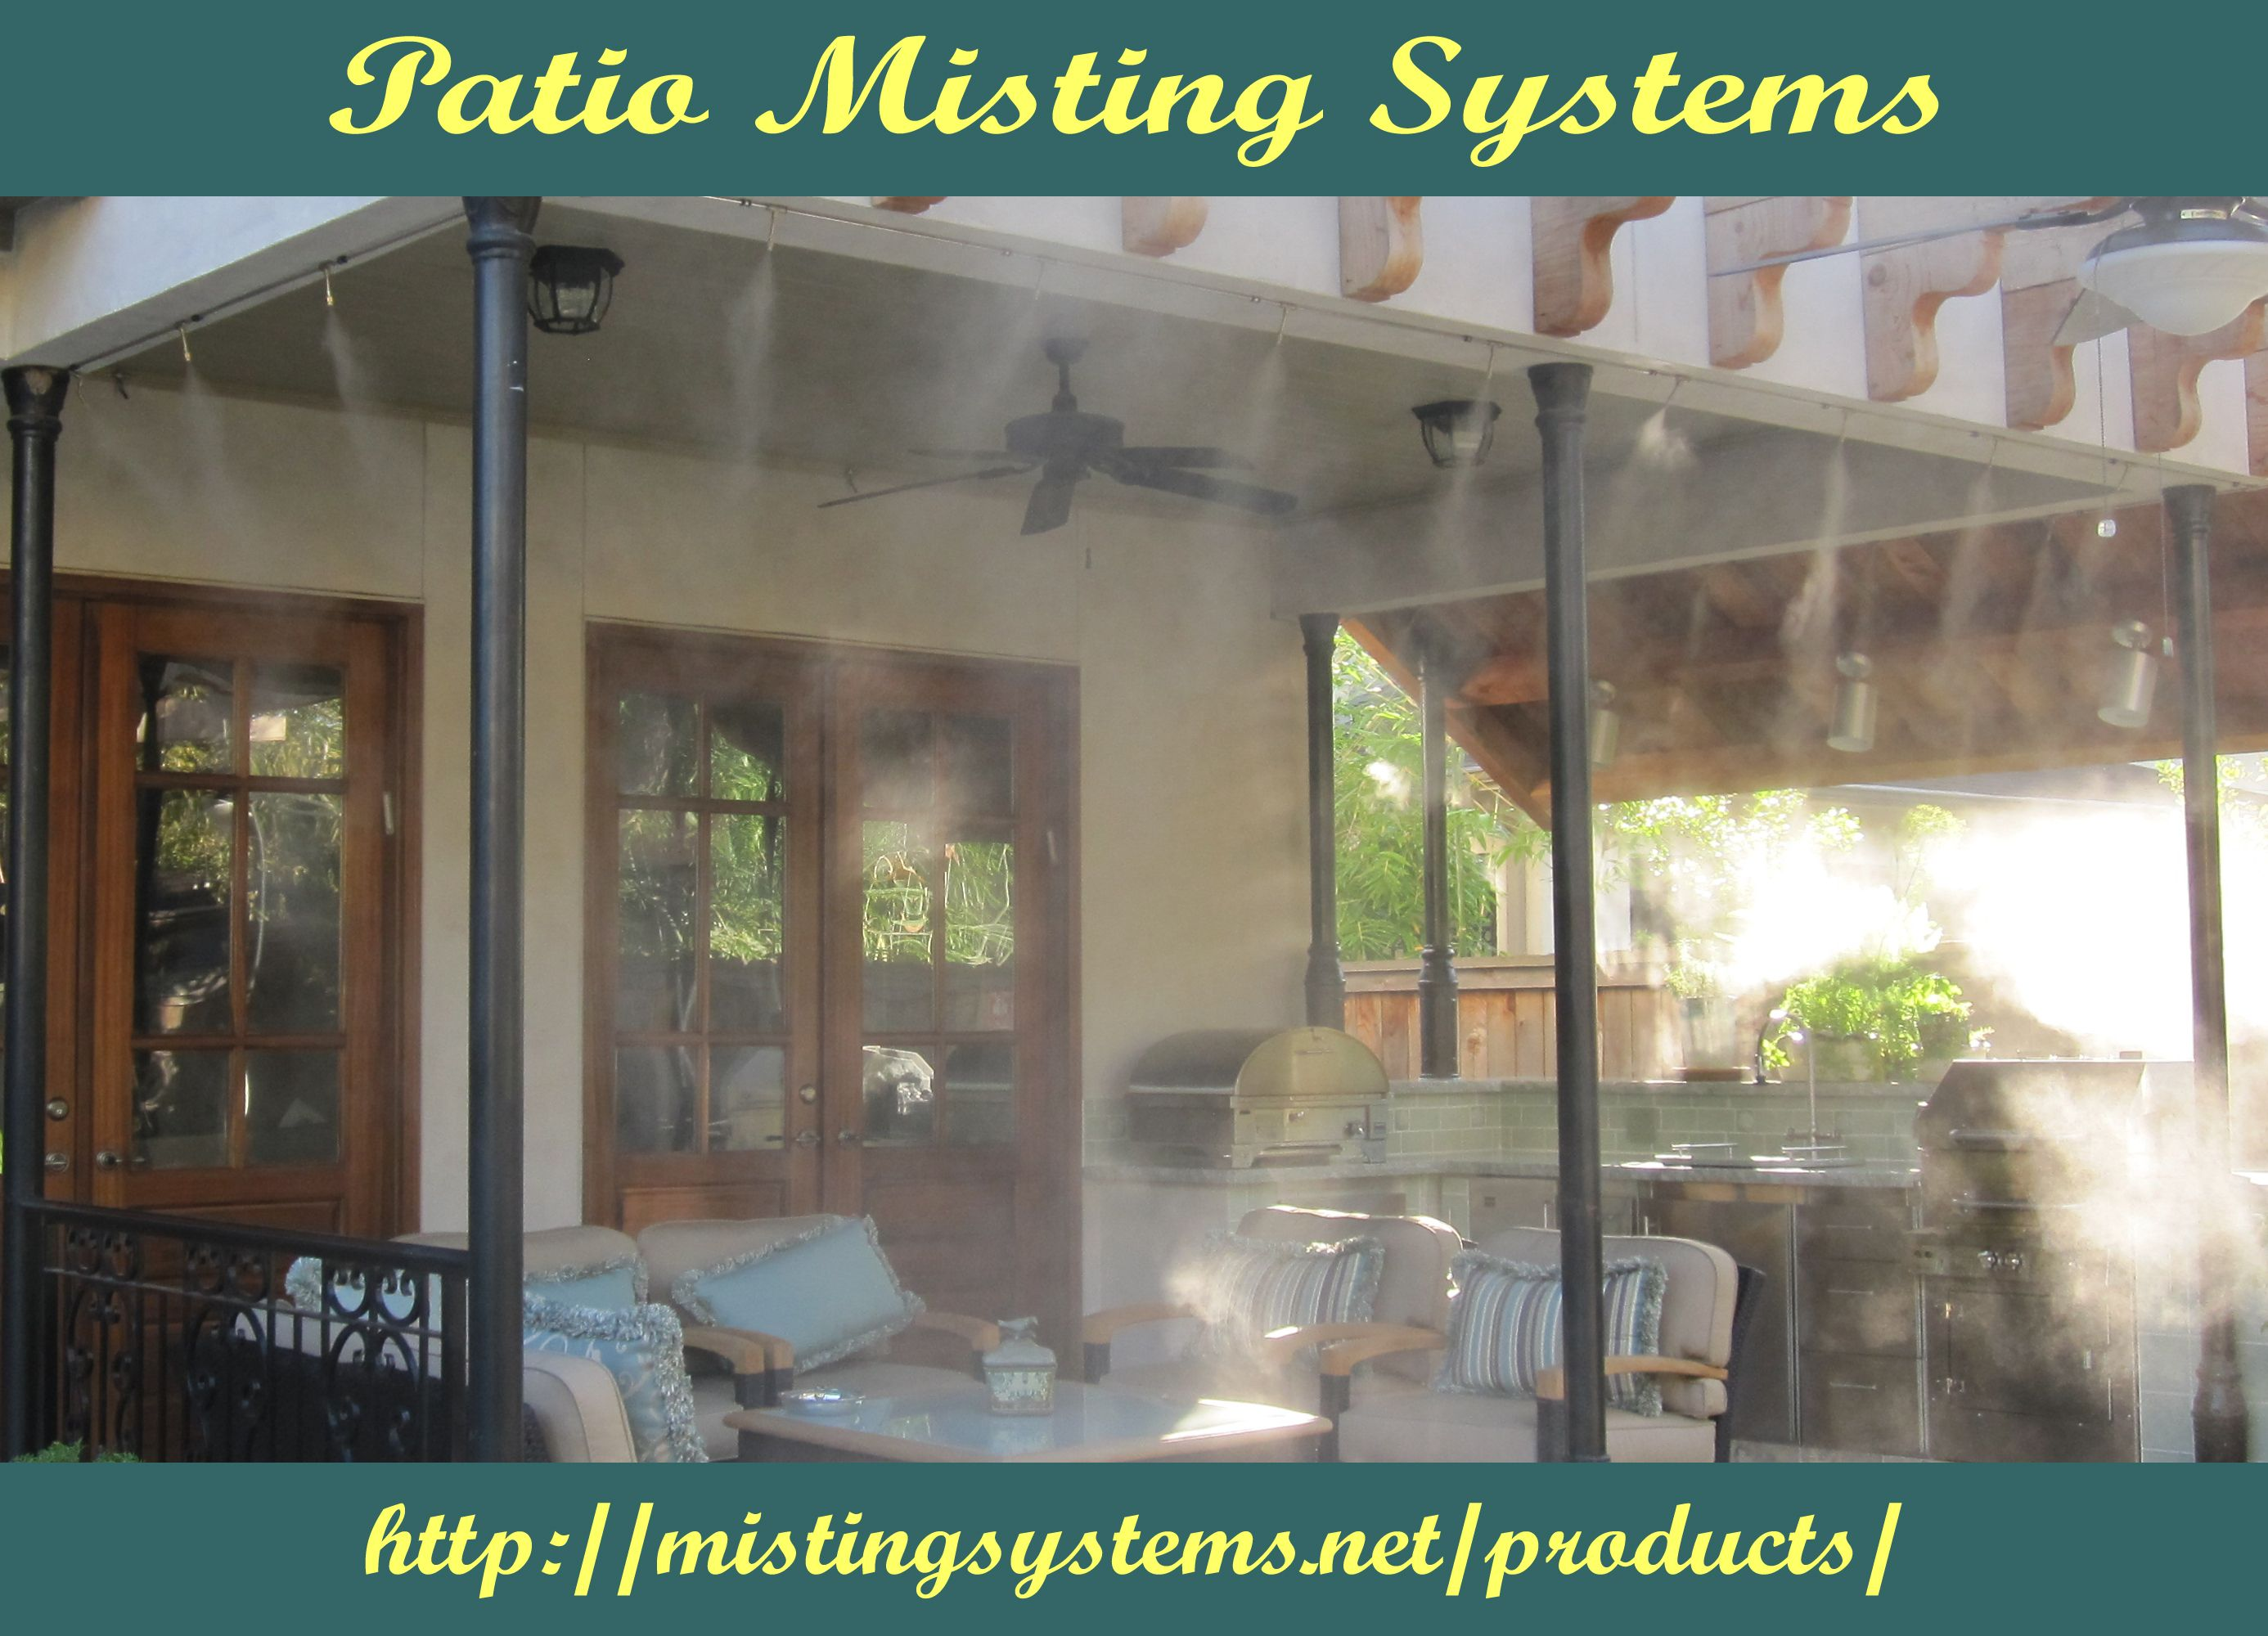 patio misting systems is the perfect choice for cooling down